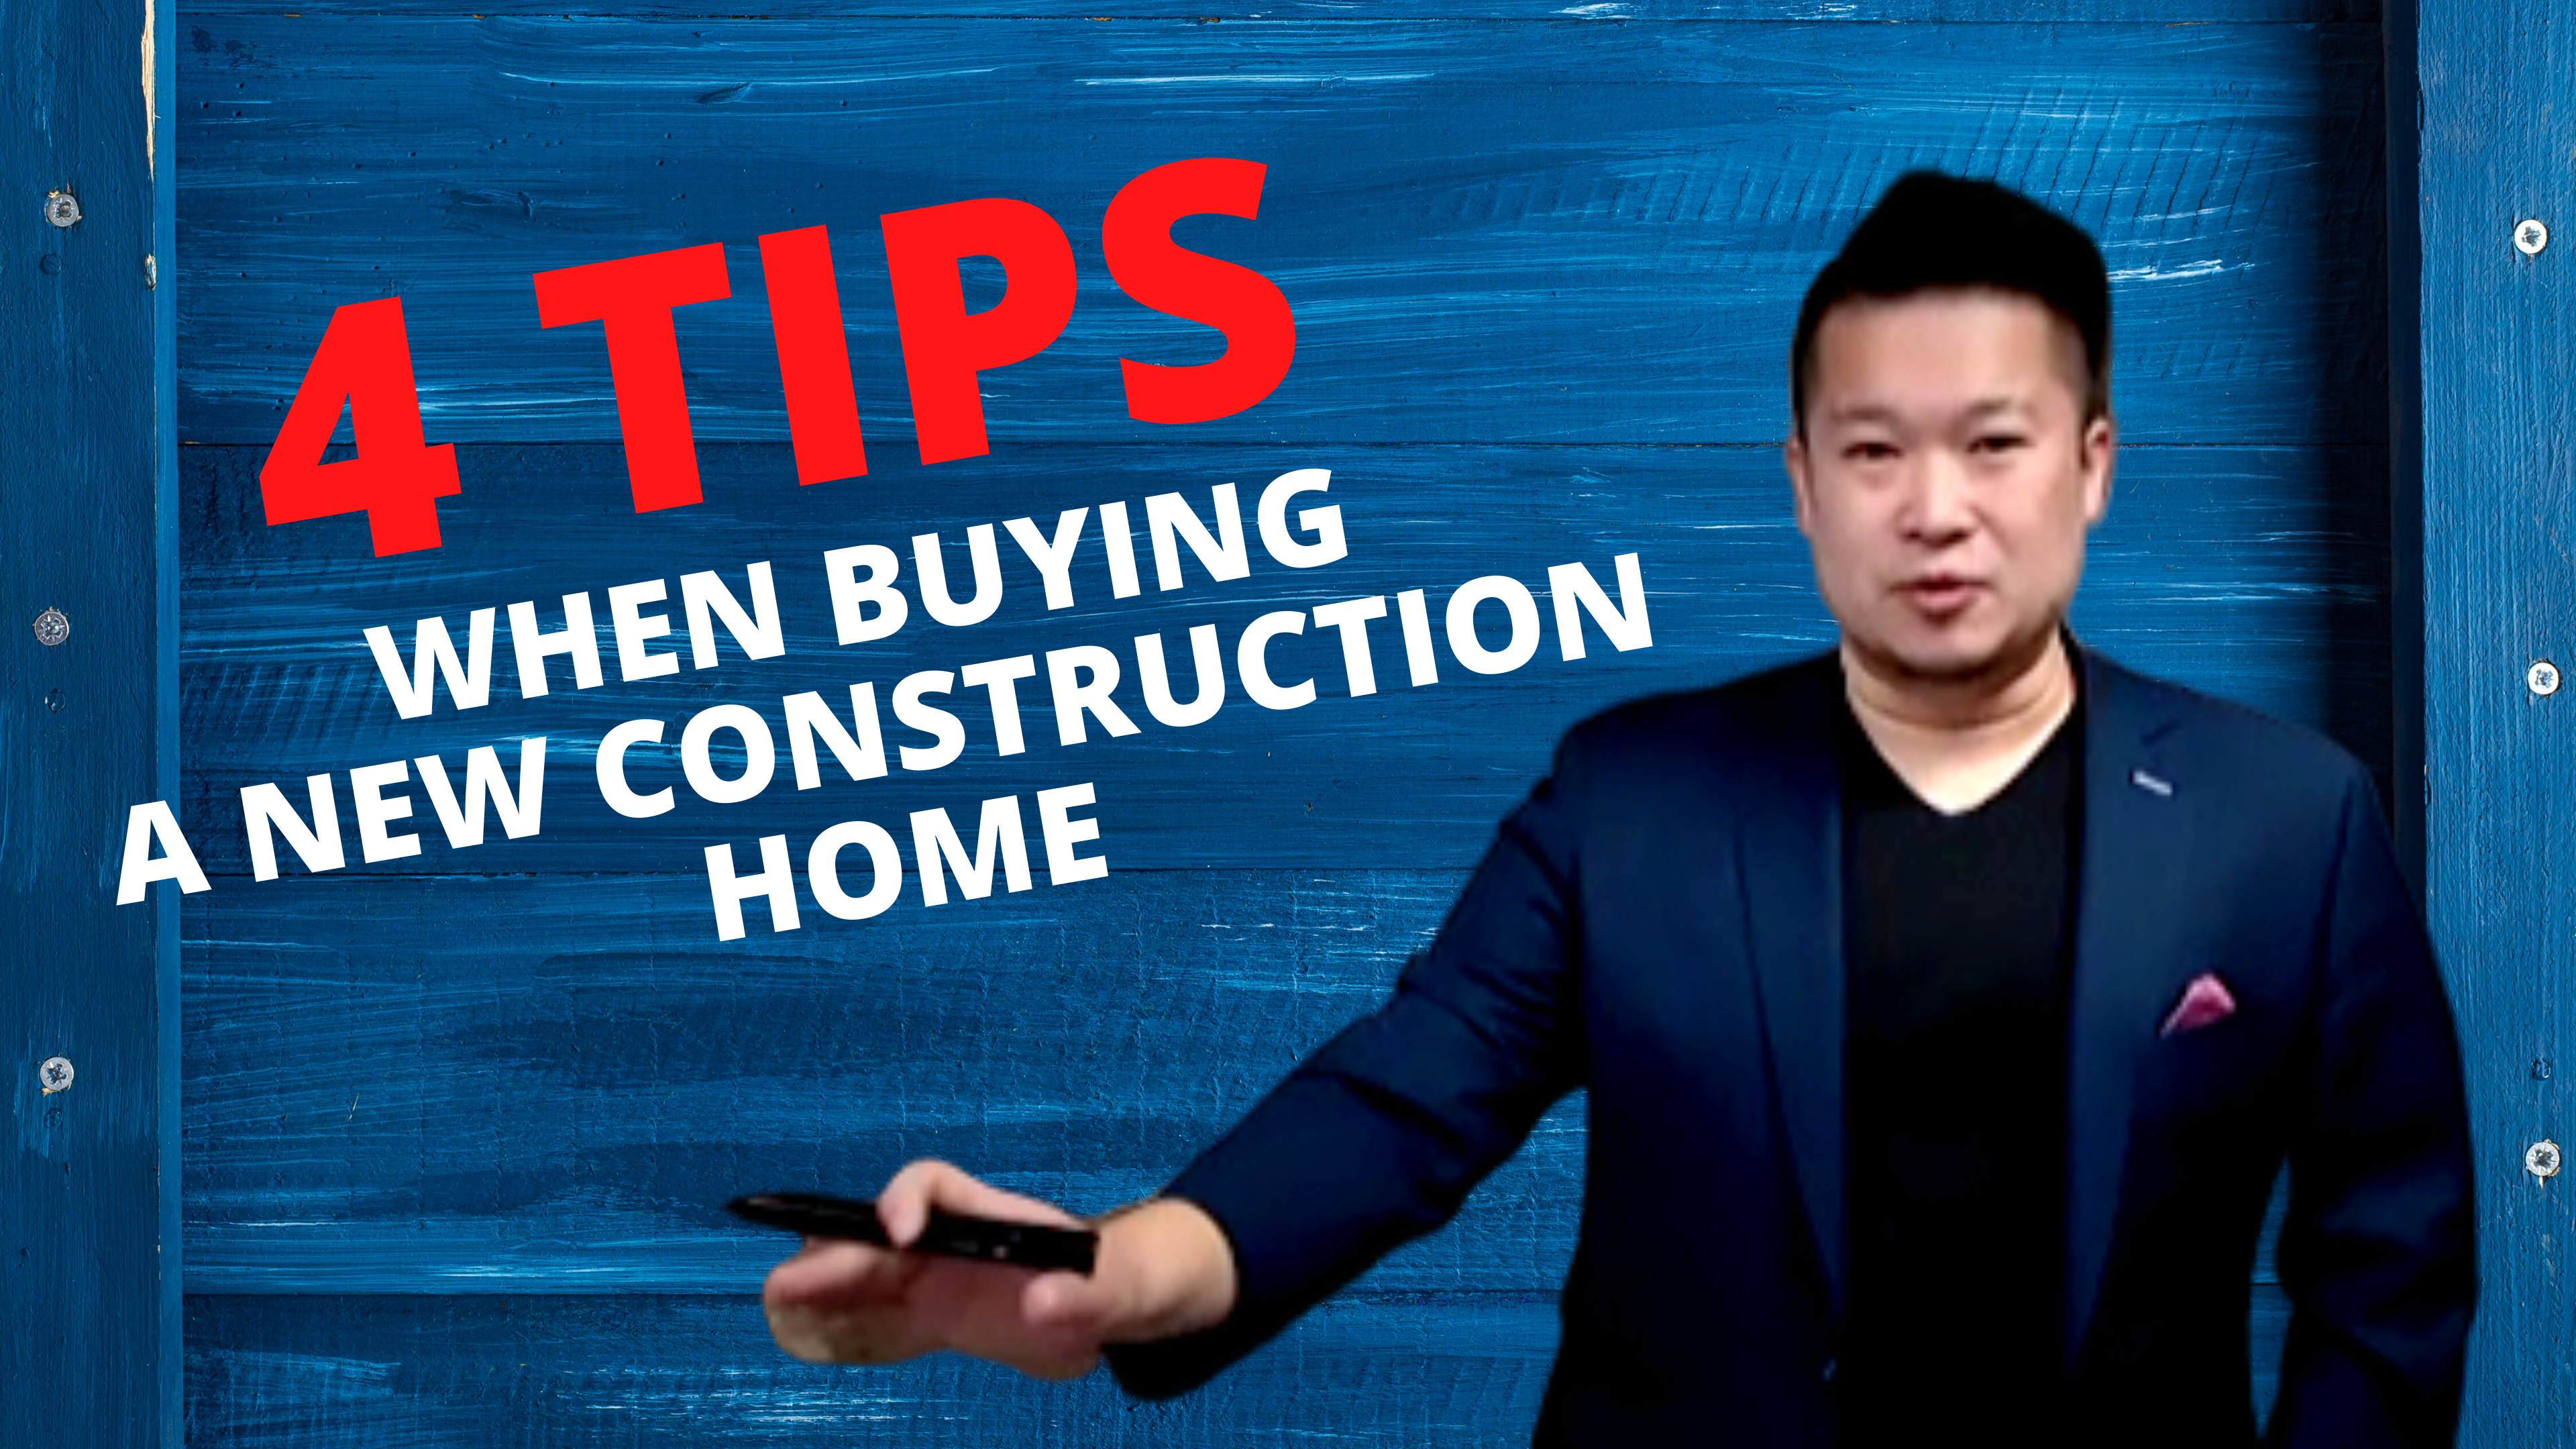 The Costly Mistakes to Avoid When Buying a New Construction Home